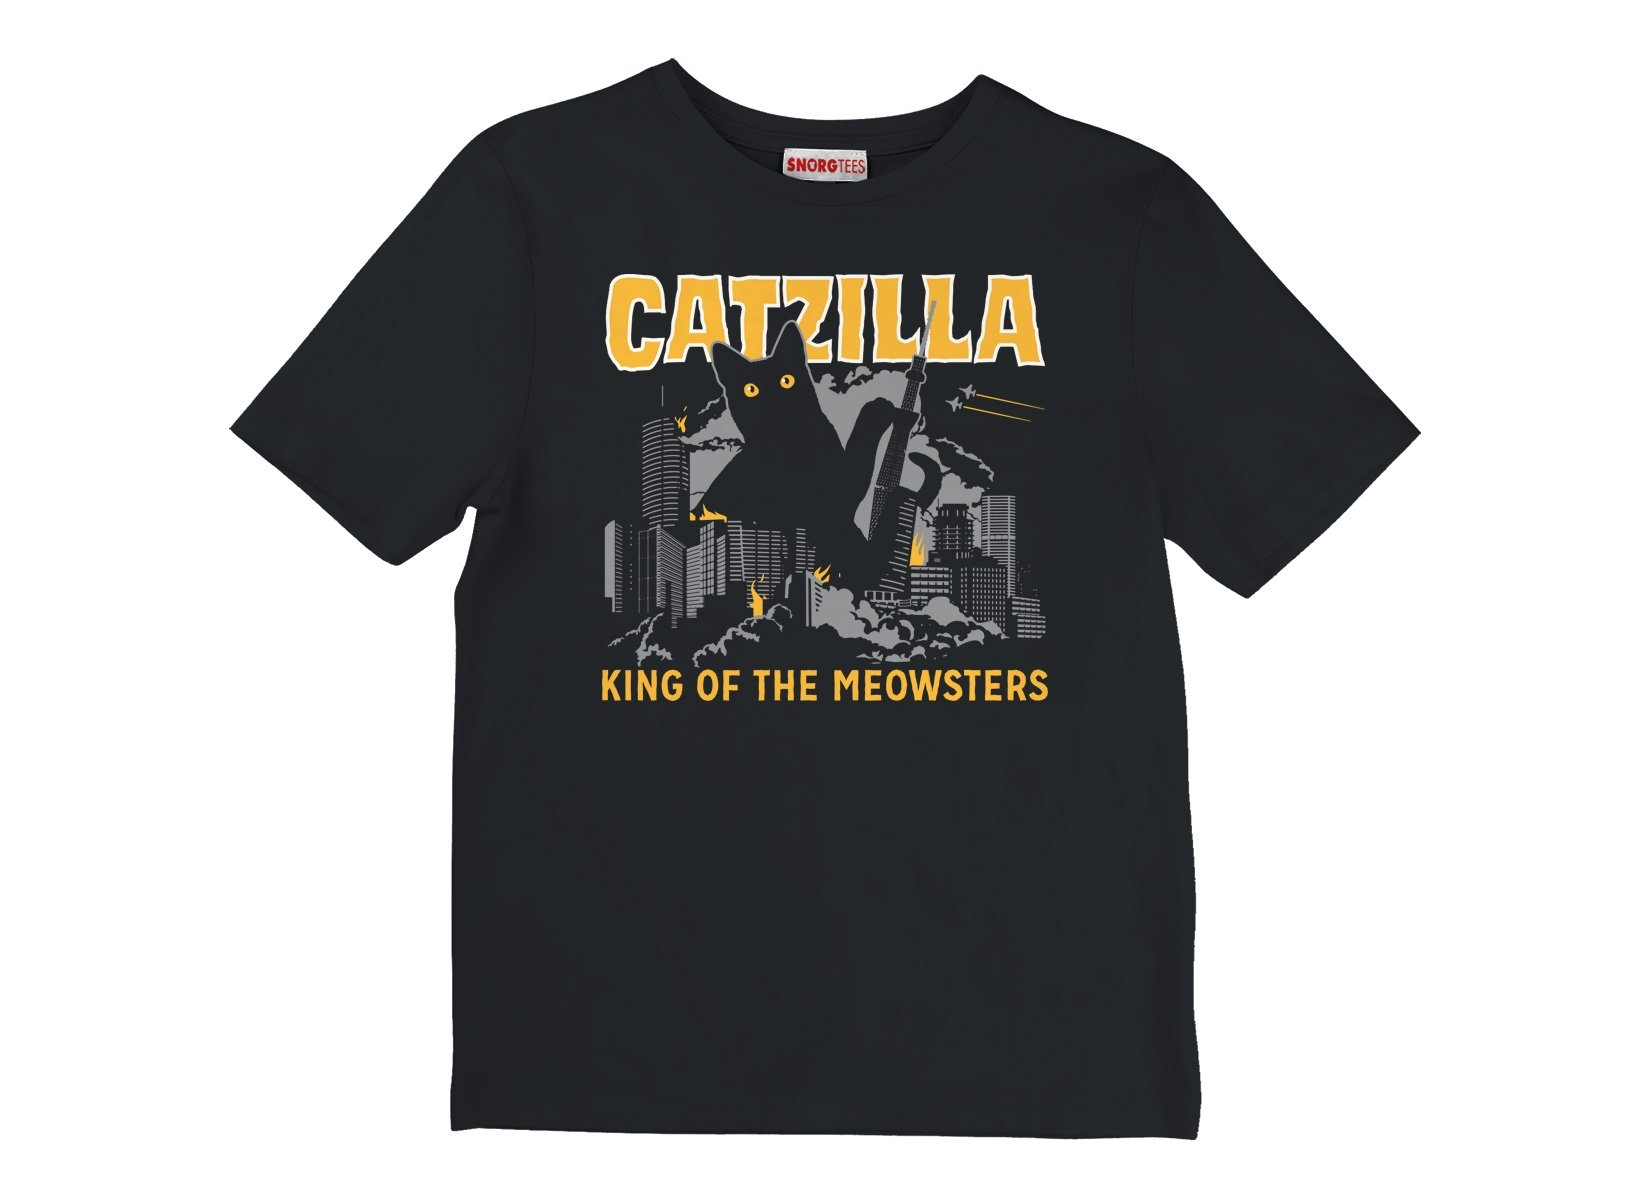 Catzilla on Kids T-Shirt